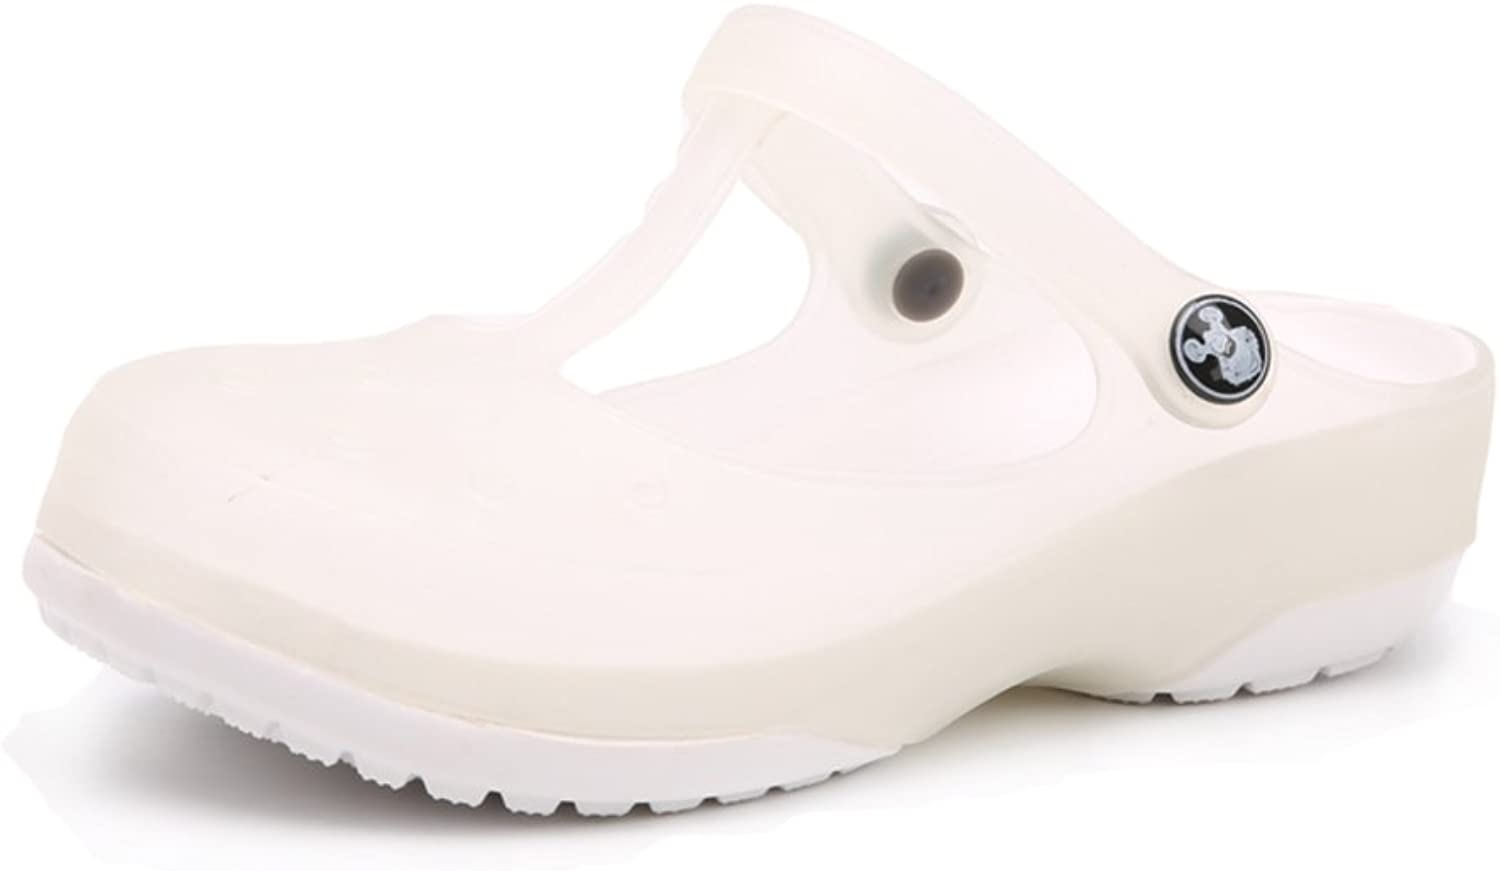 WLJSLLZYQ Lady Wading shoes Cross shoes Beach shoes Sandals Slippers Garden